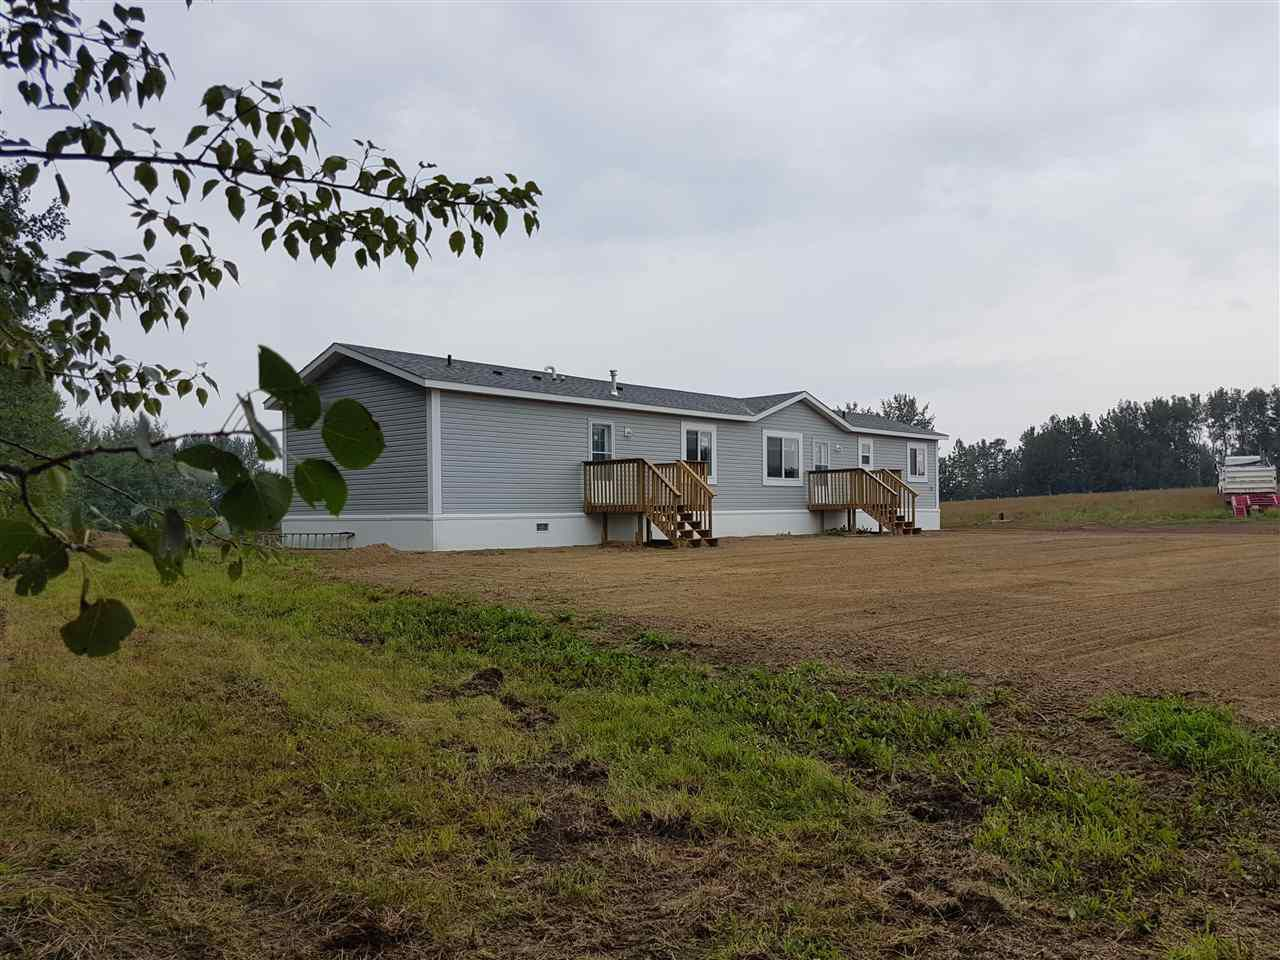 Main Photo: 0 52304 RANGE ROAD 30: Rural Parkland County House for sale : MLS®# E4142550